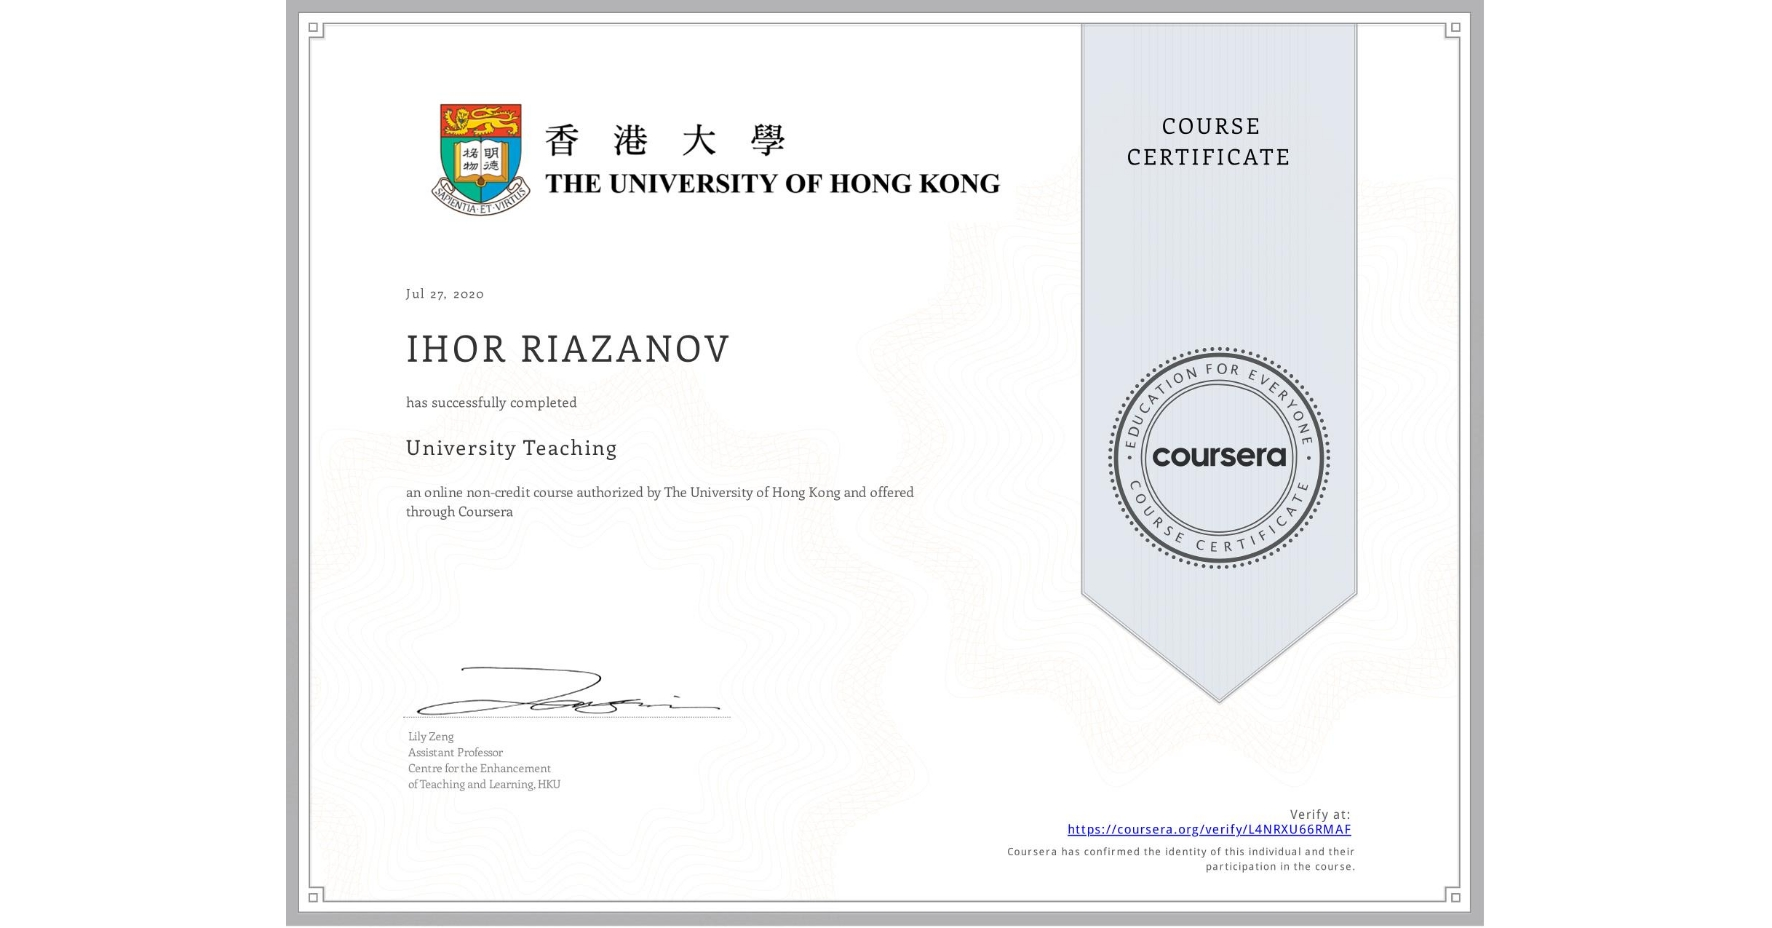 View certificate for IHOR RIAZANOV, University Teaching, an online non-credit course authorized by The University of Hong Kong and offered through Coursera